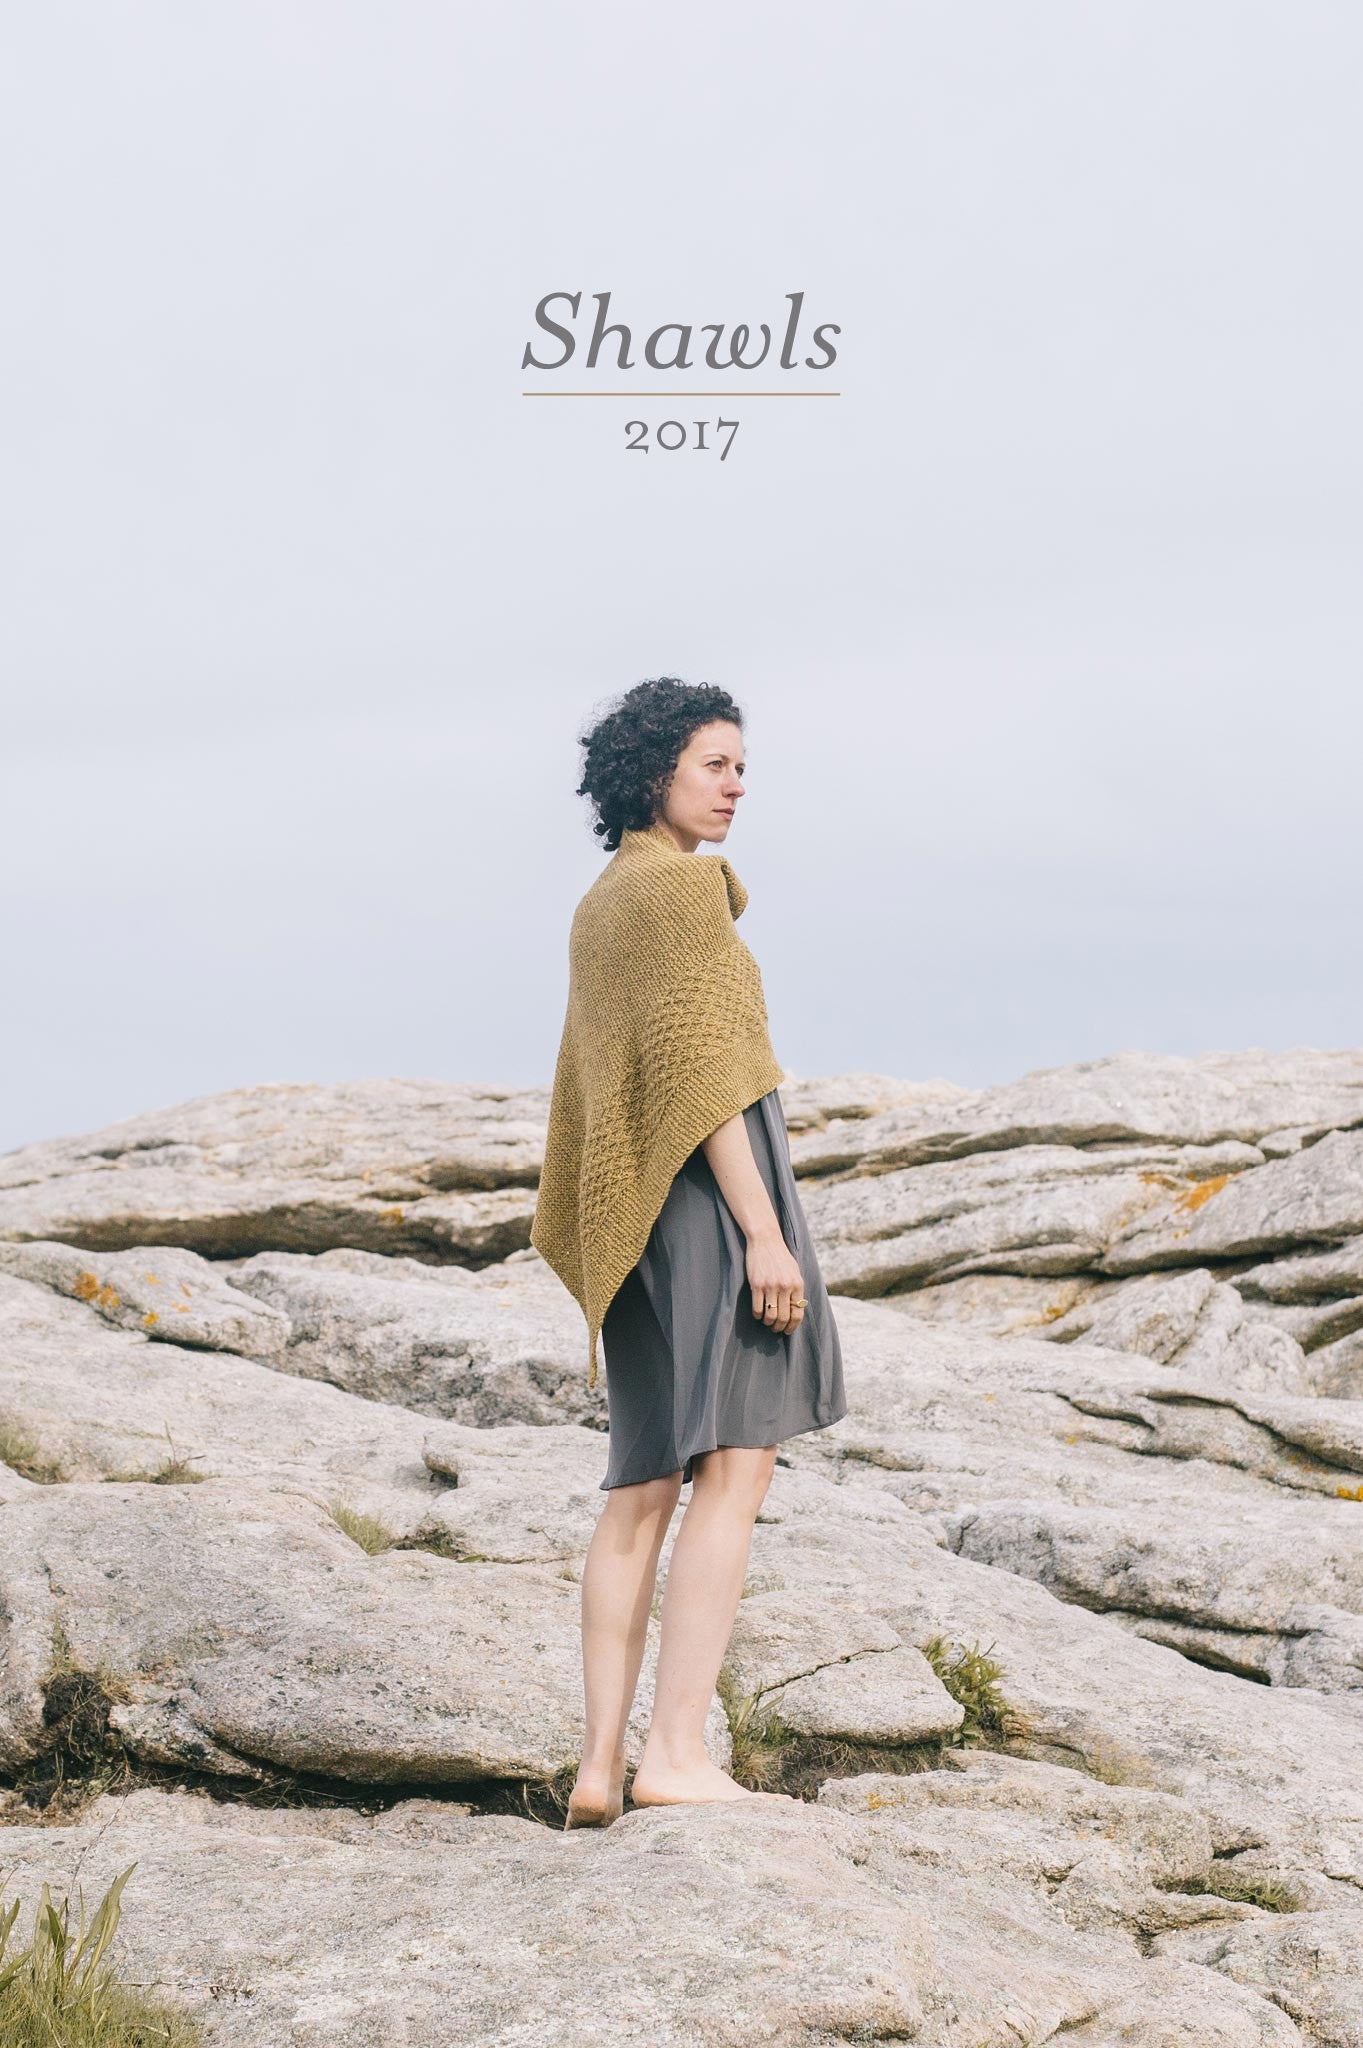 https://quinceandco.com/products/shawls-2017-knitting-pattern-collection